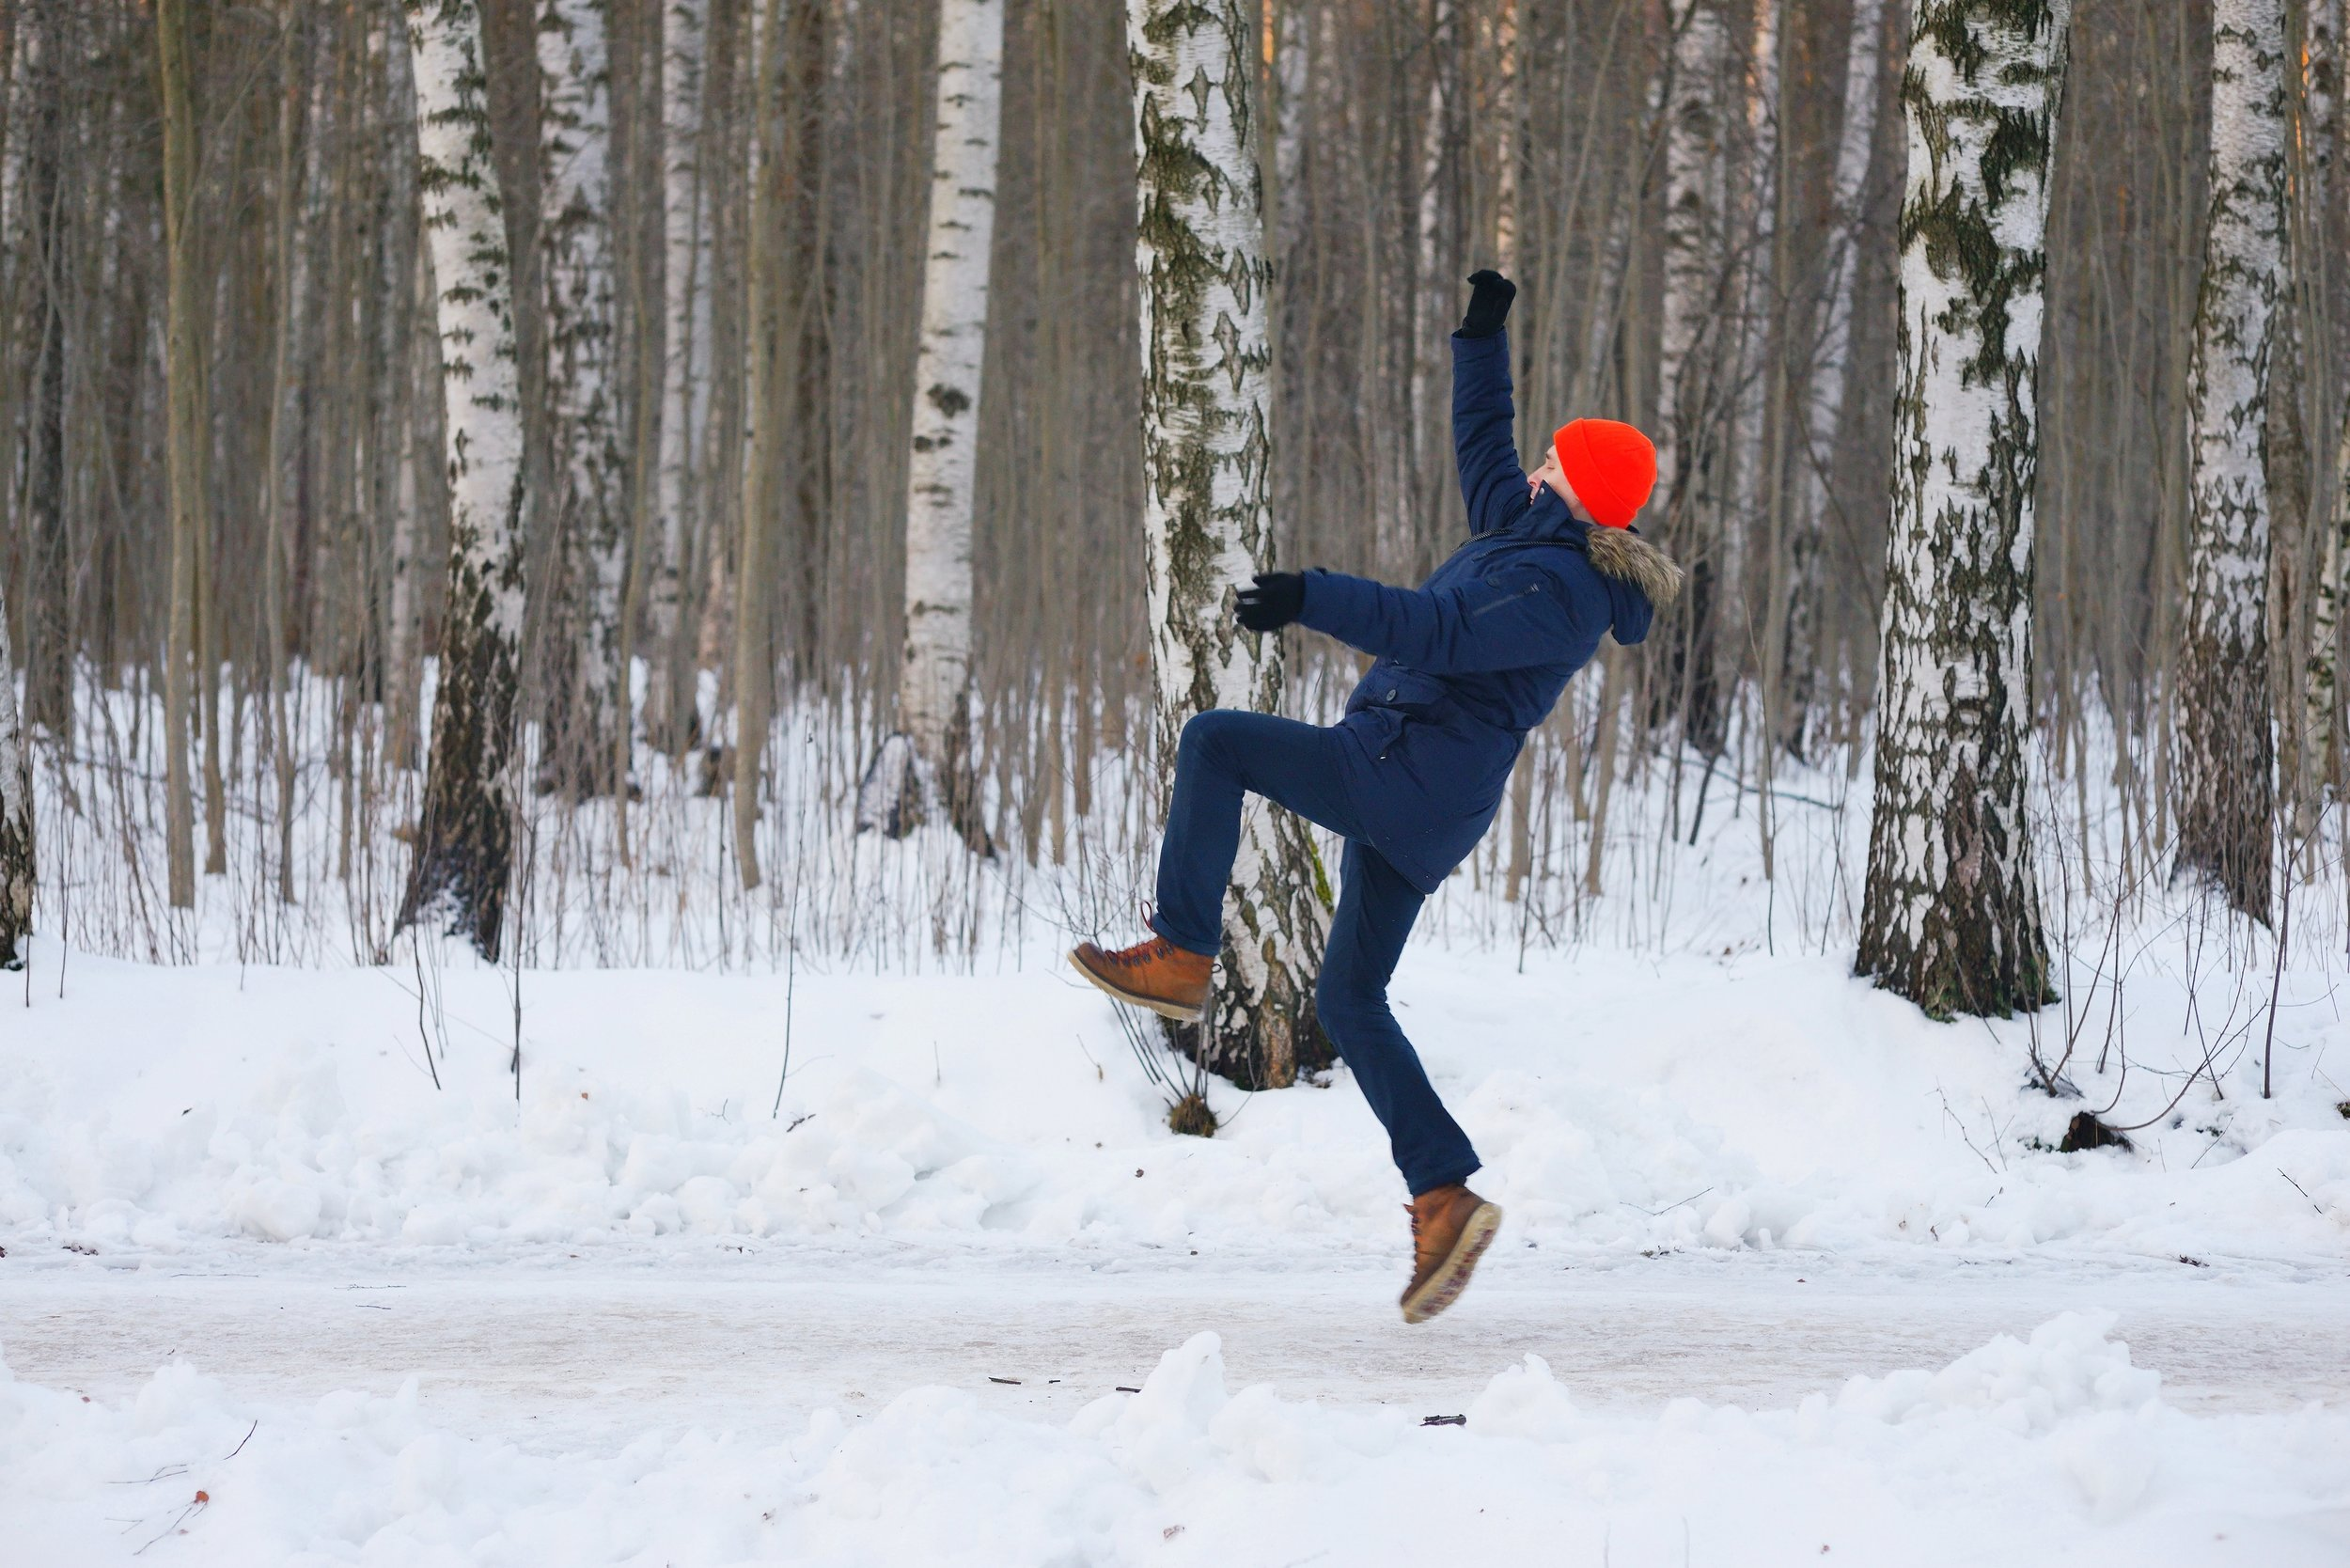 c41067b9bc172 Amy Fahlman Physiotherapist - Slips or Falls on Ice and Snow: Should you go  to emergency, see a doctor, or consult a physiotherapist? - Amy Fahlman Blog